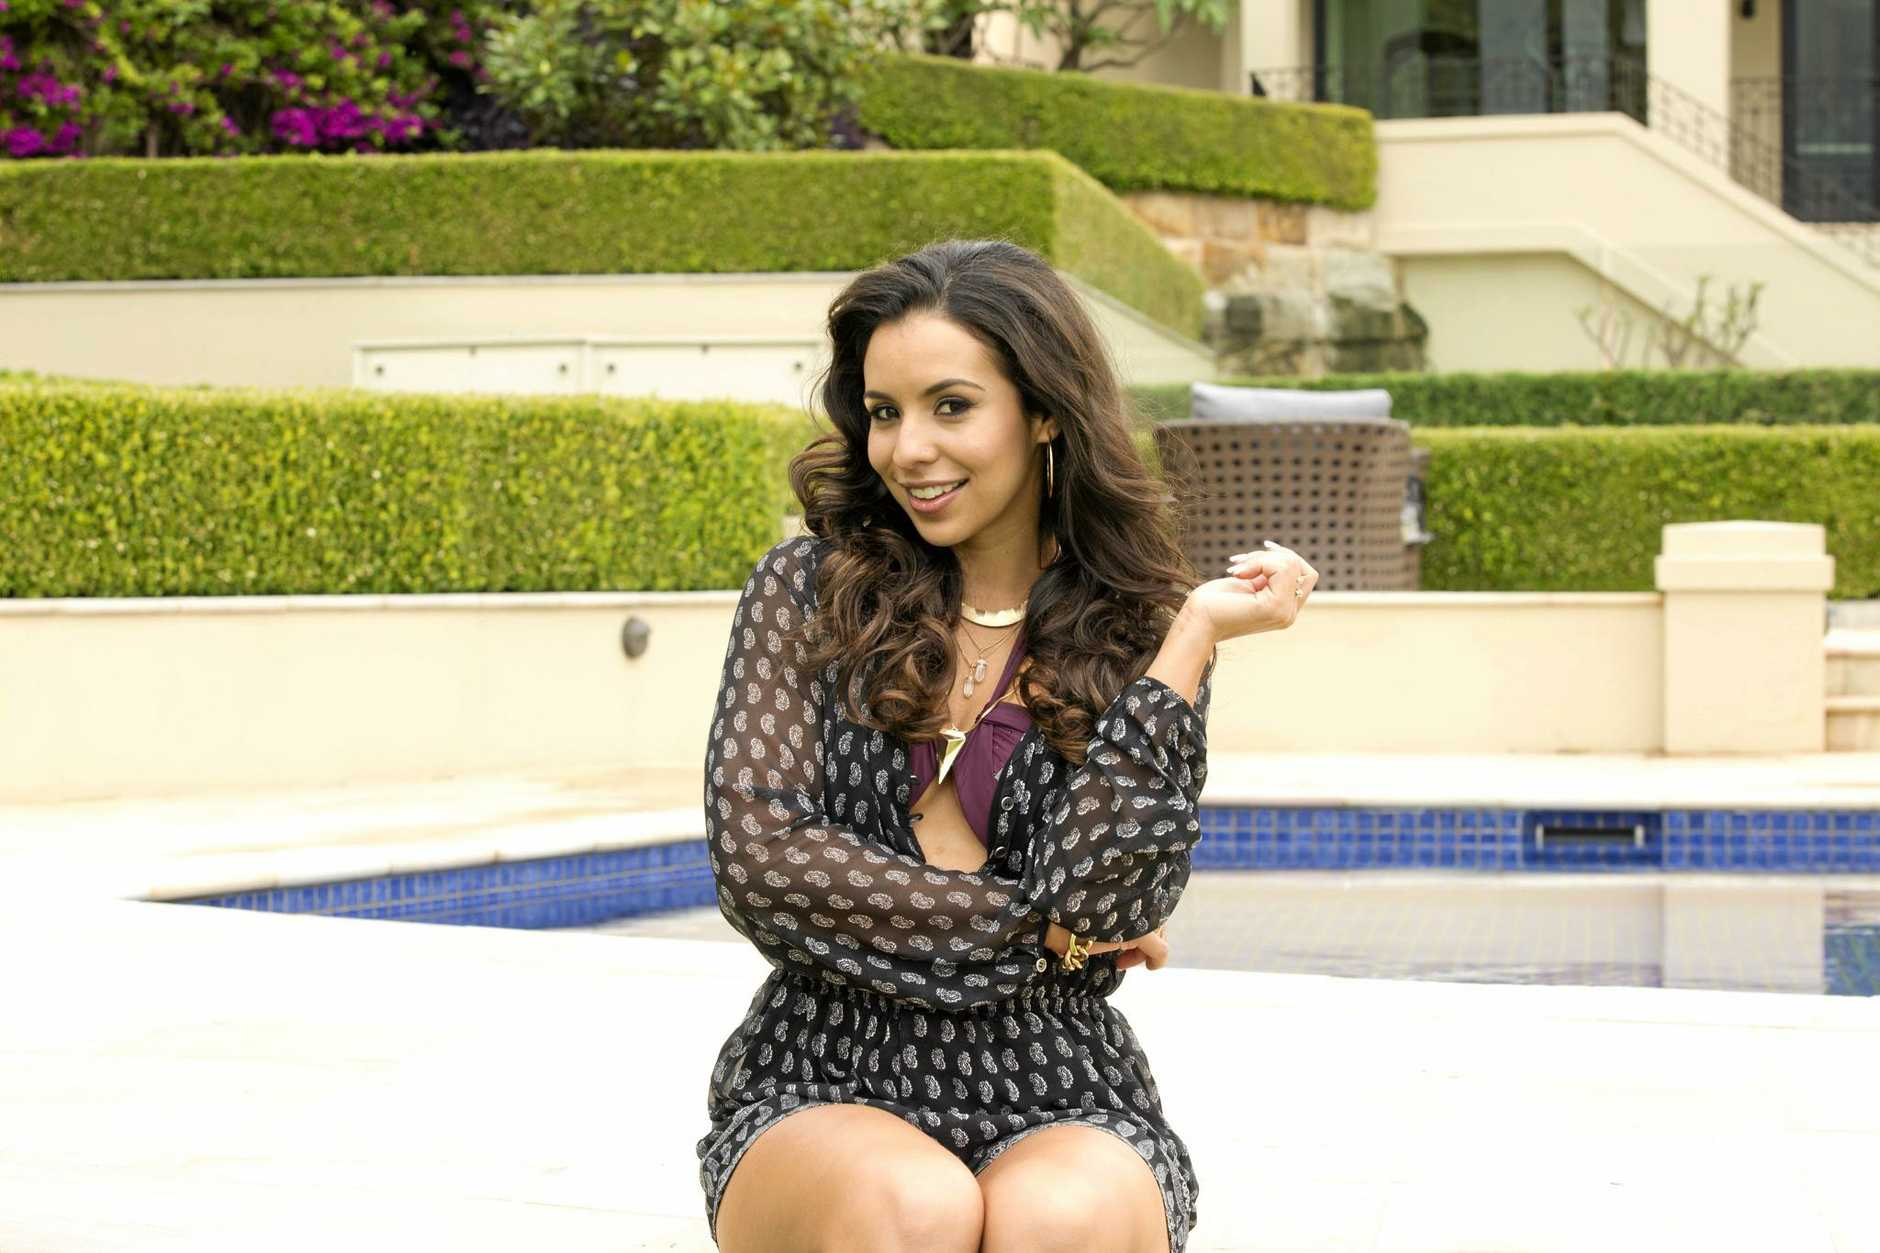 Kat Hoyos stars as Layla in Here Come The Habibs.